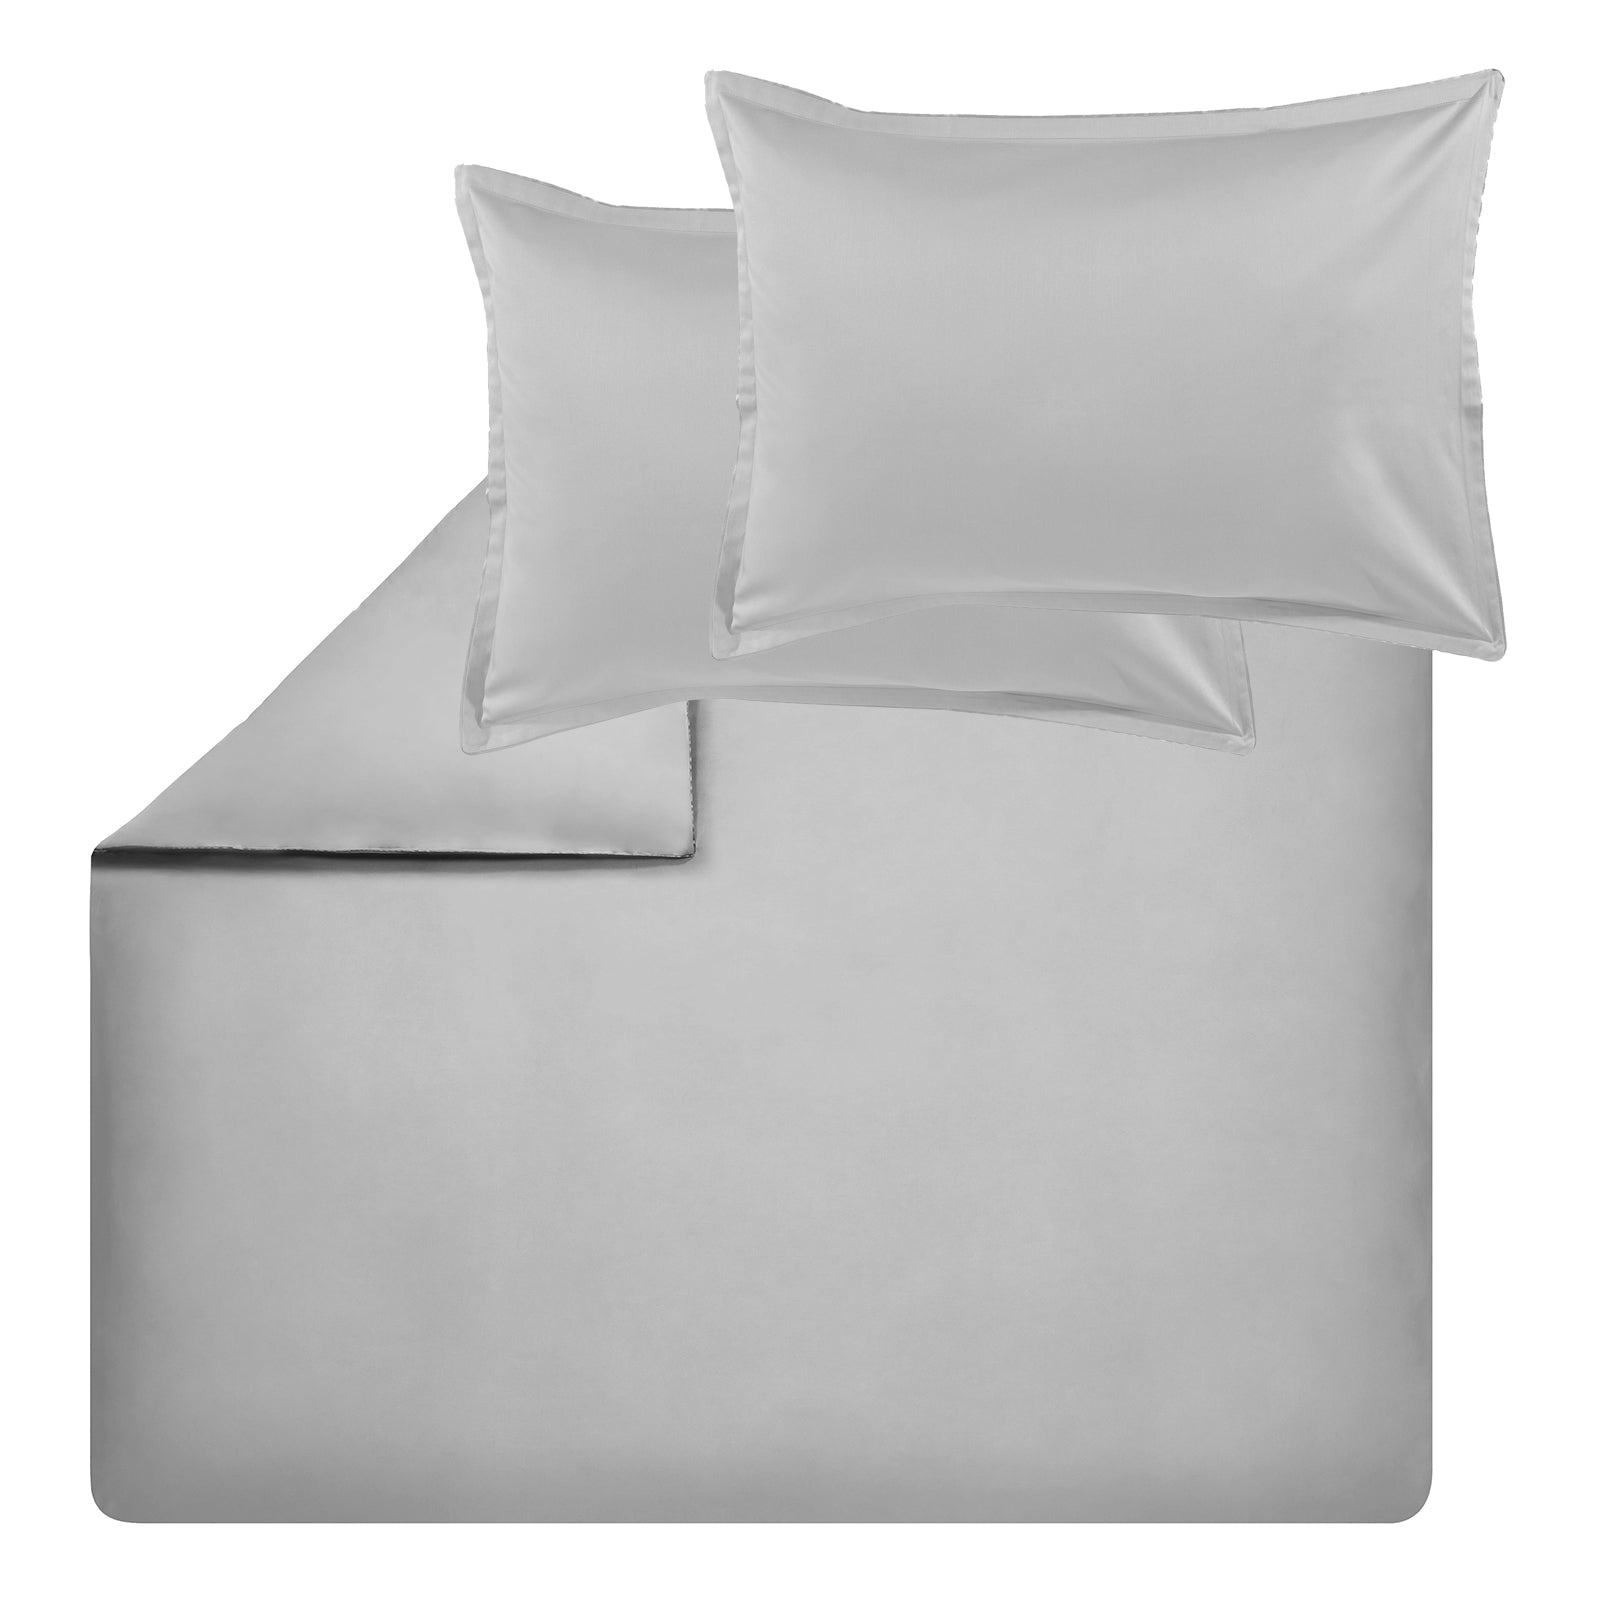 TEO Silver Duvet Cover Set